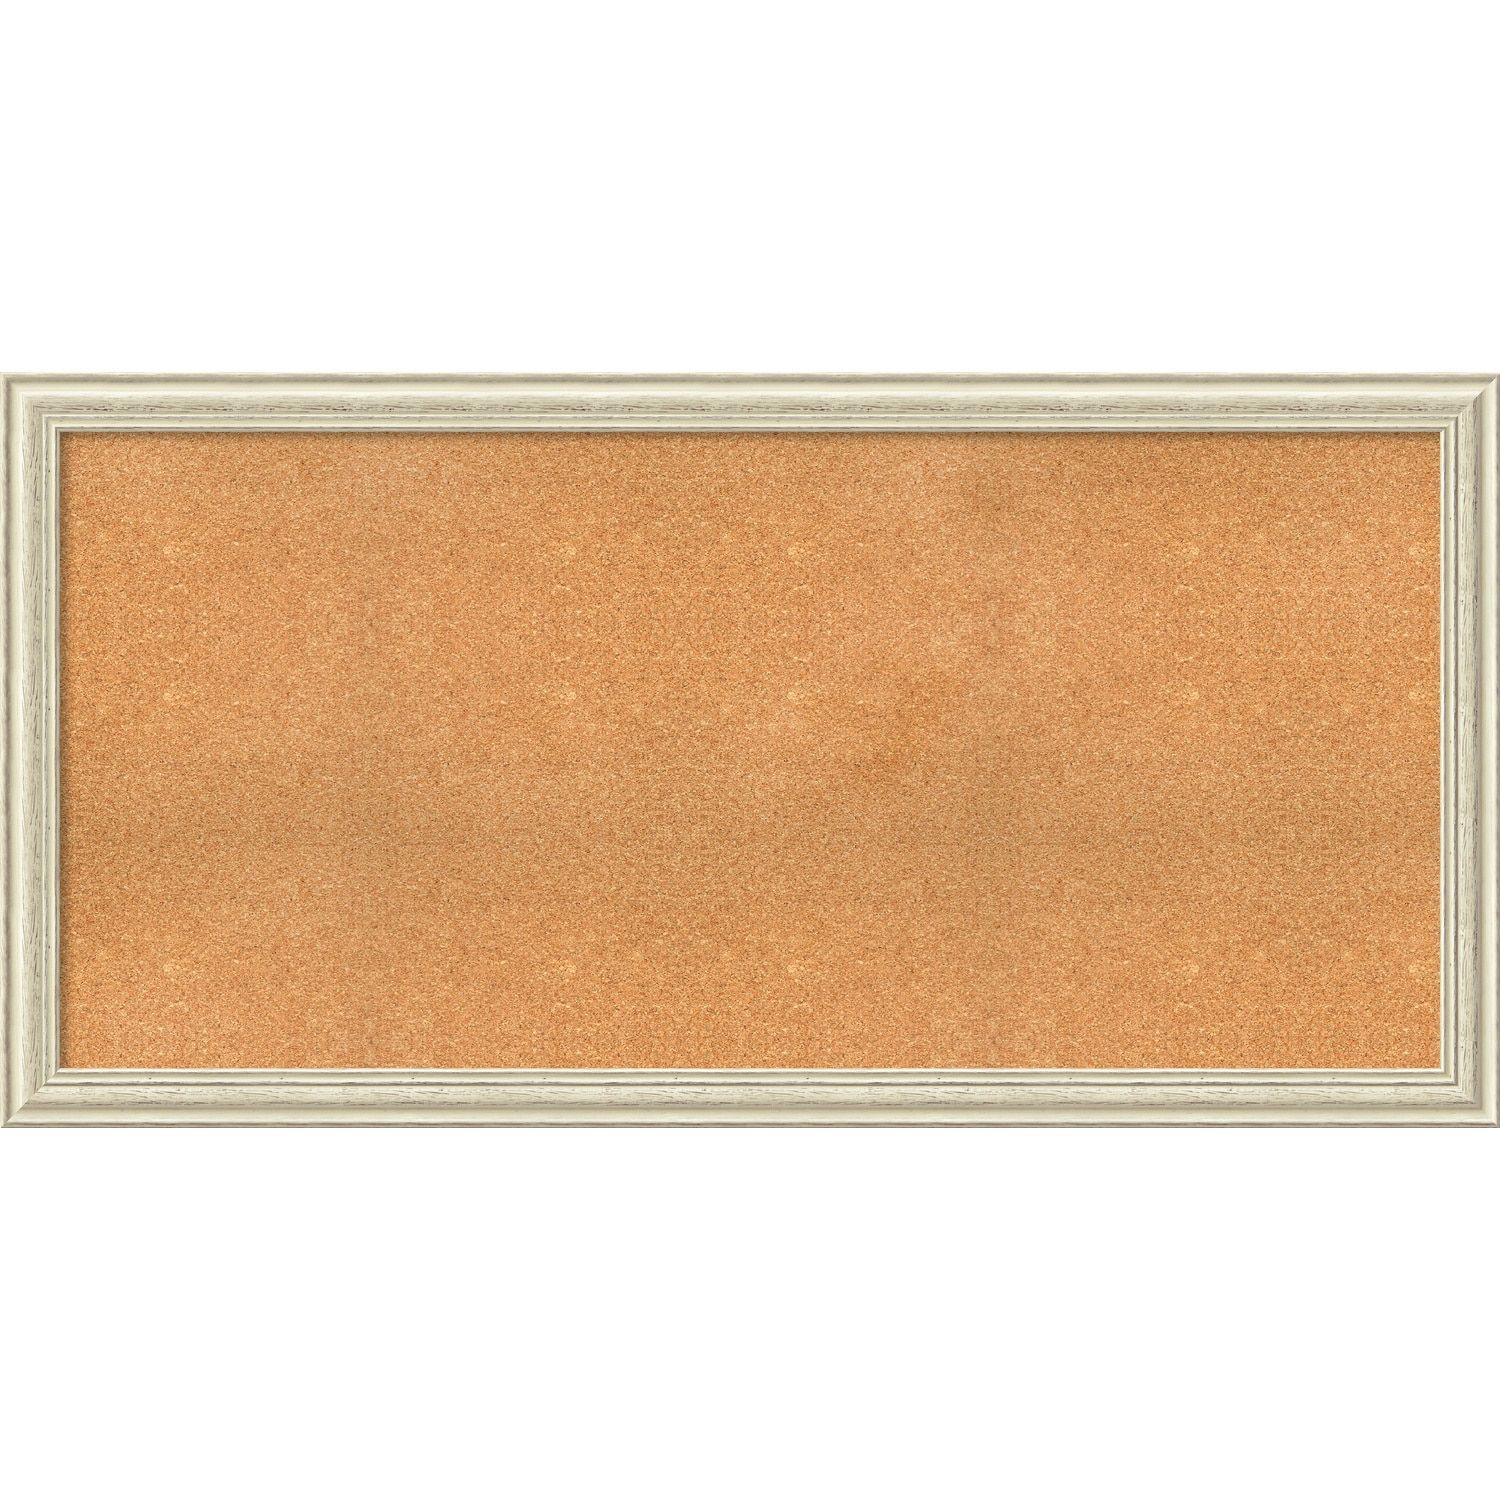 Framed Cork Board, Choose Your Custom Size, Country White Wash